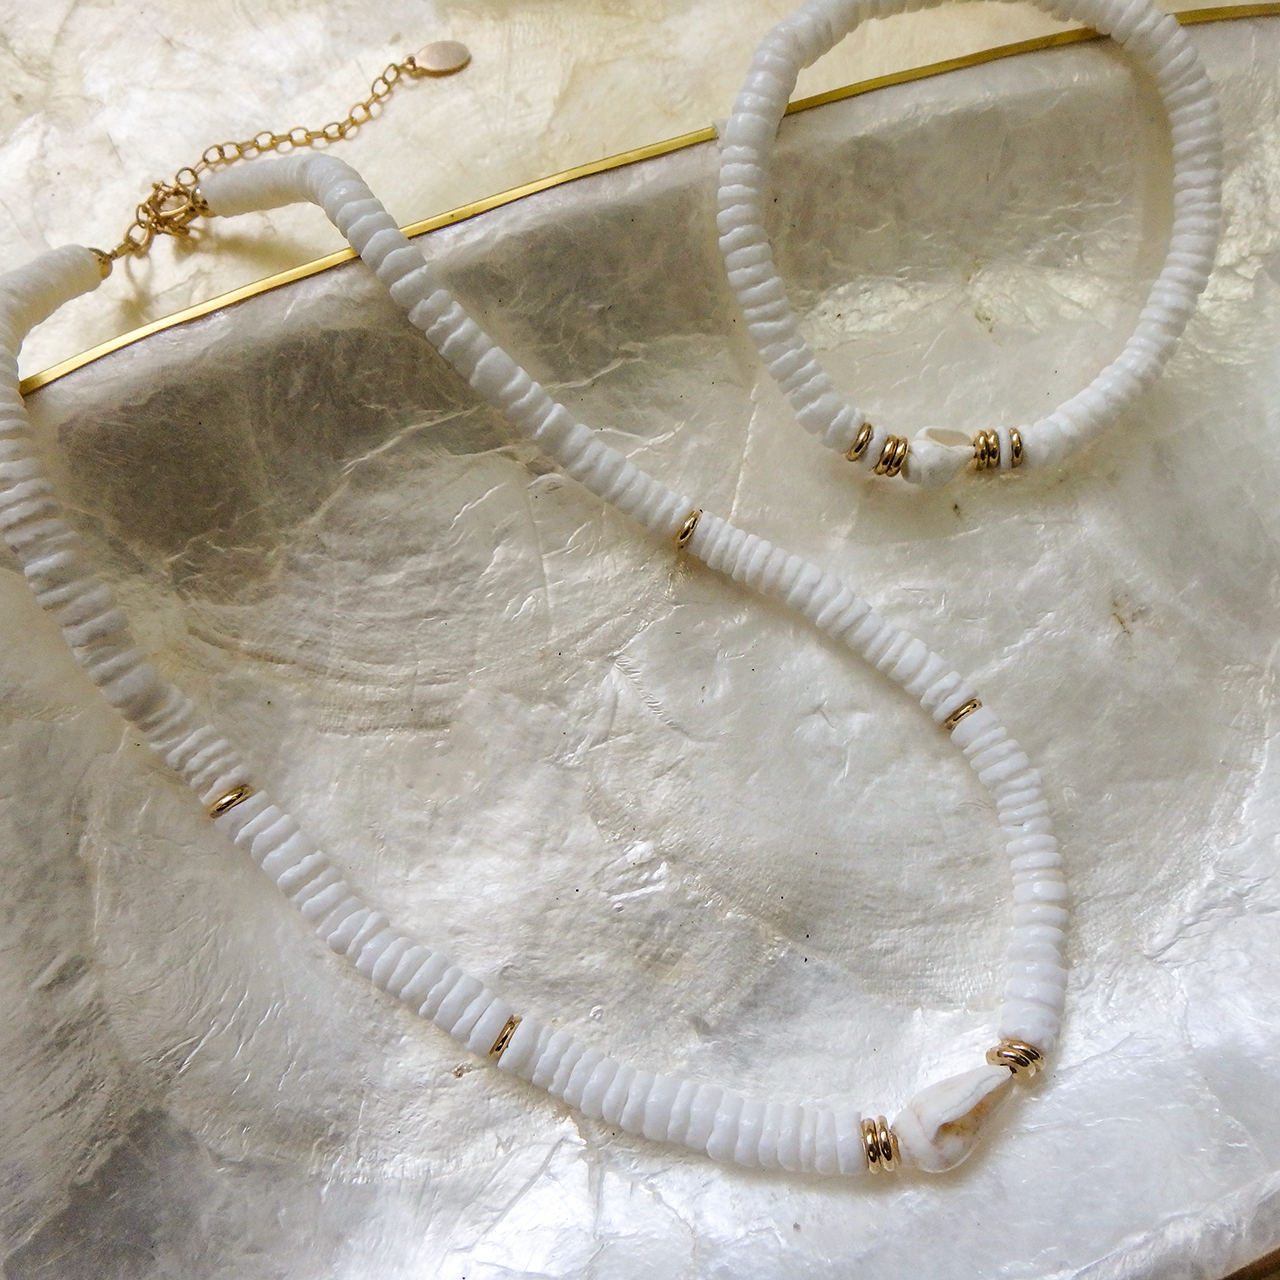 Snail × Clamshell Necklace